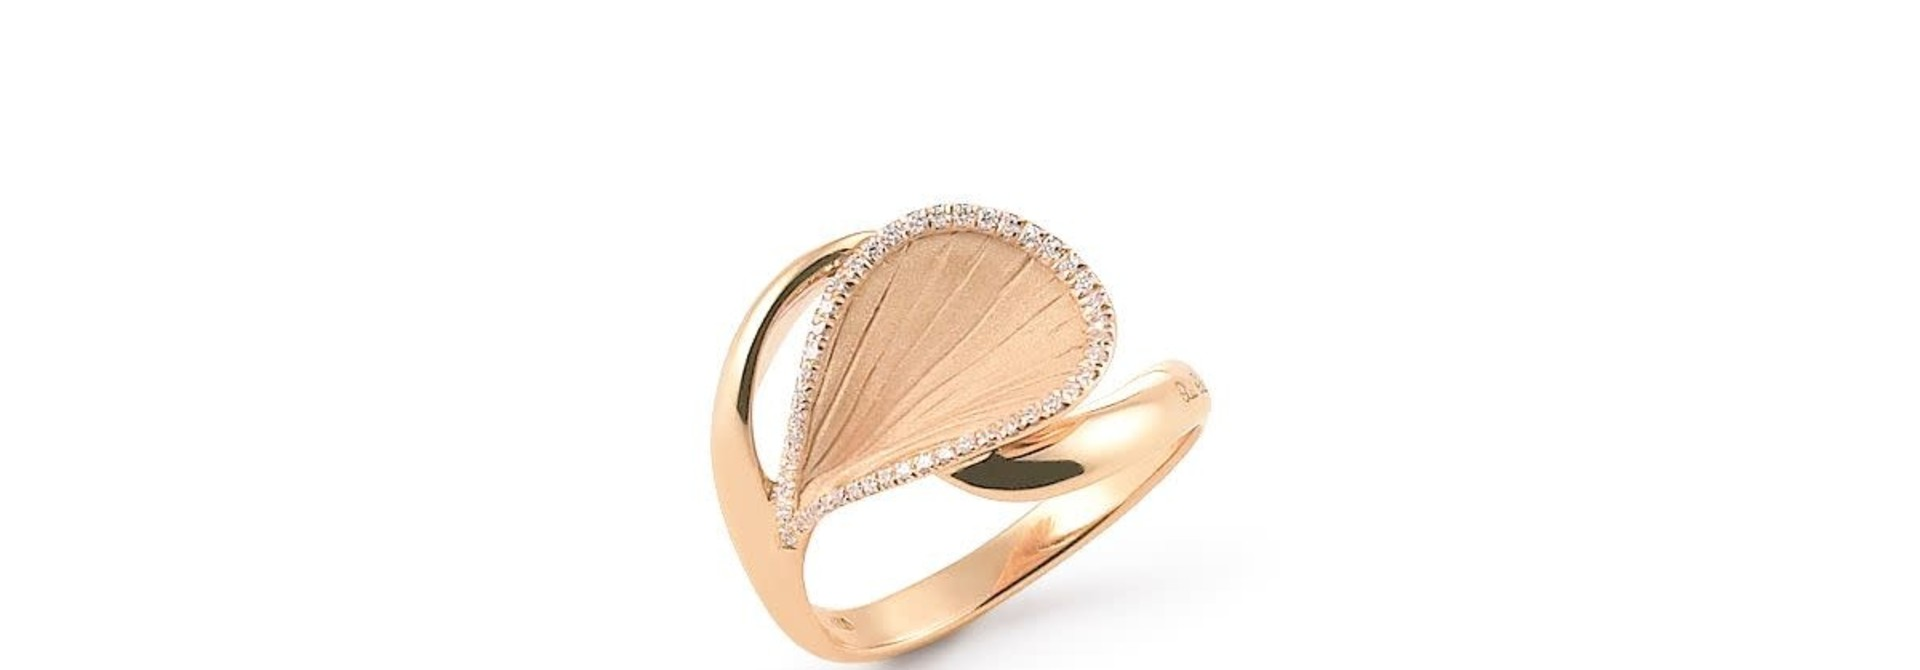 Goccia Collection Ring, 18Kt Orange Apricot Gold With Diamonds